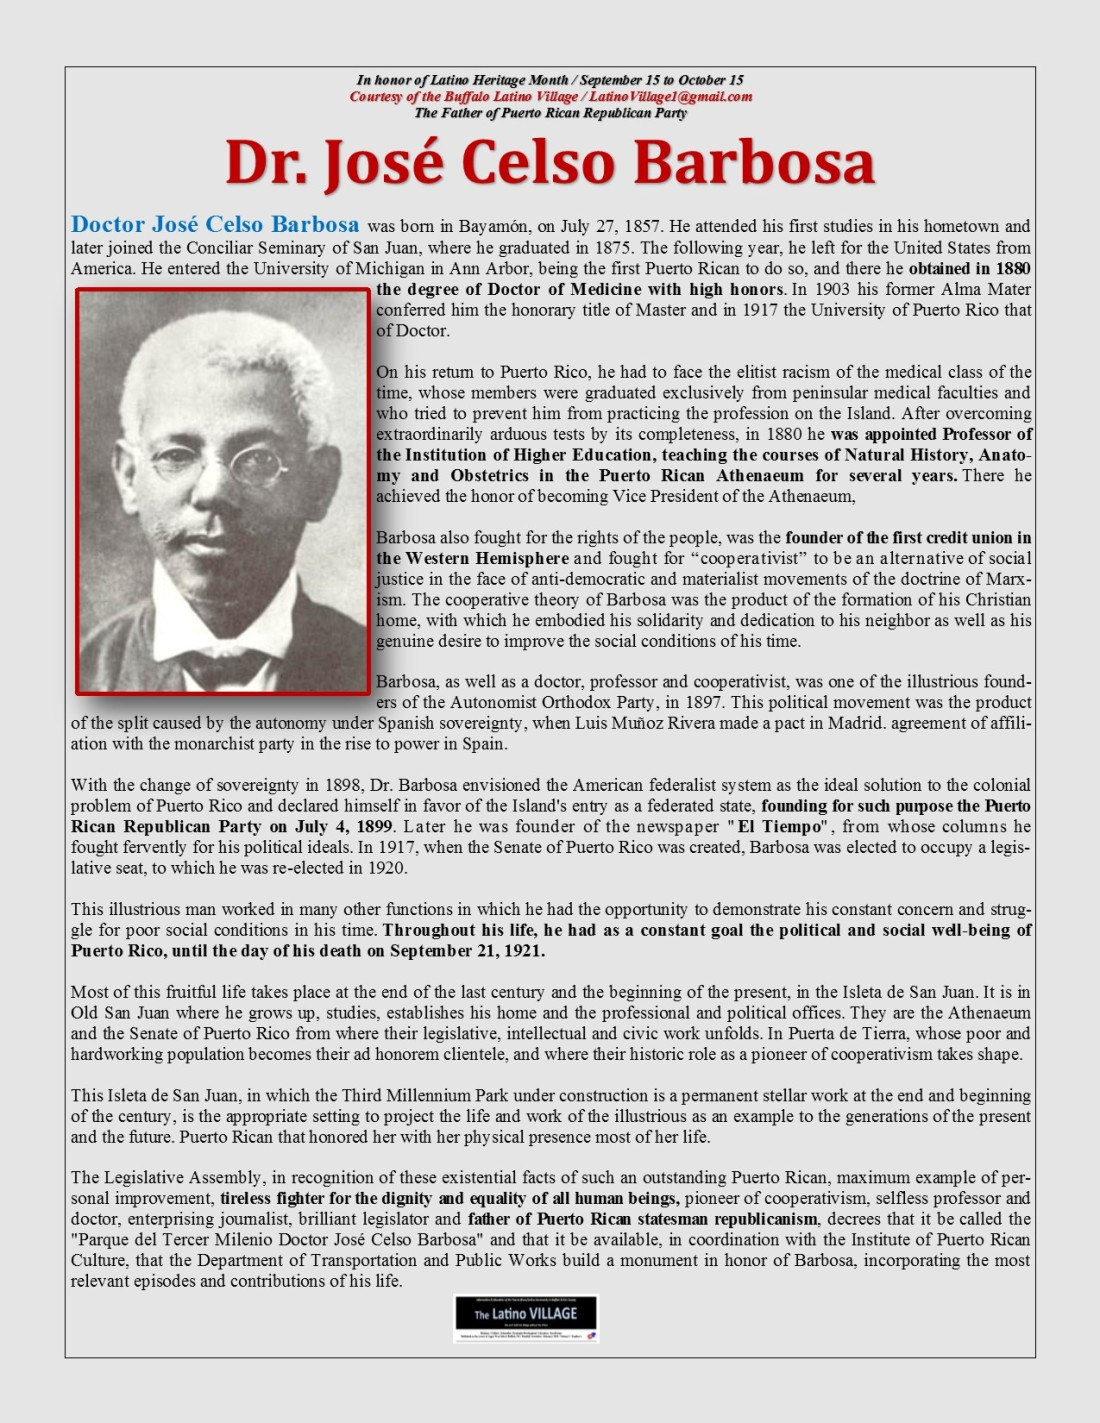 Dr Jose Celso Barbosa